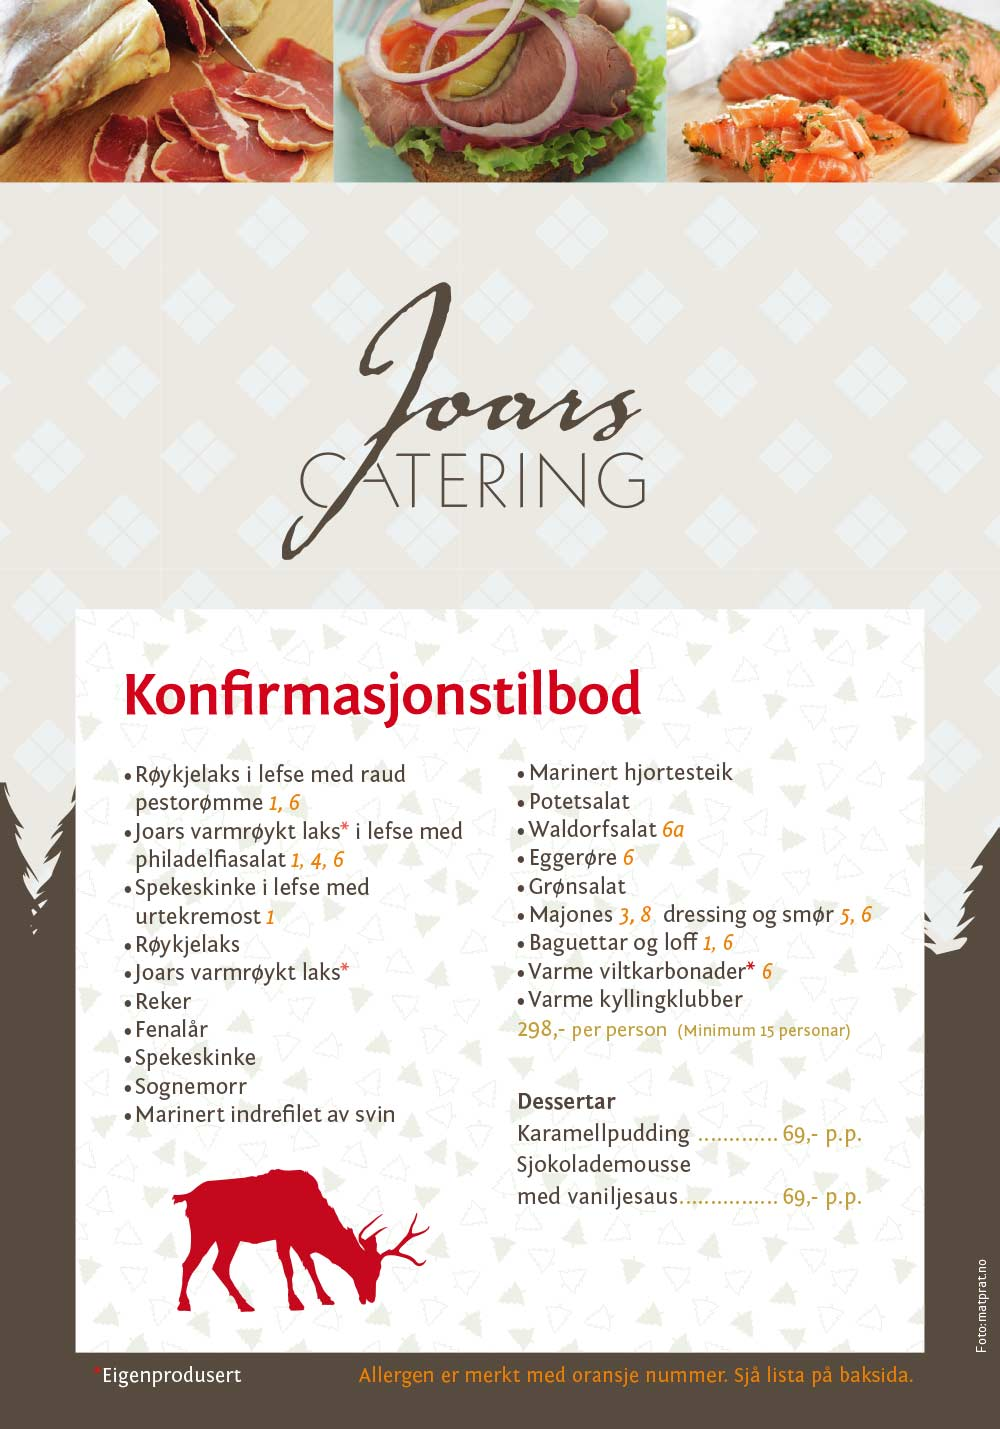 Joars catering